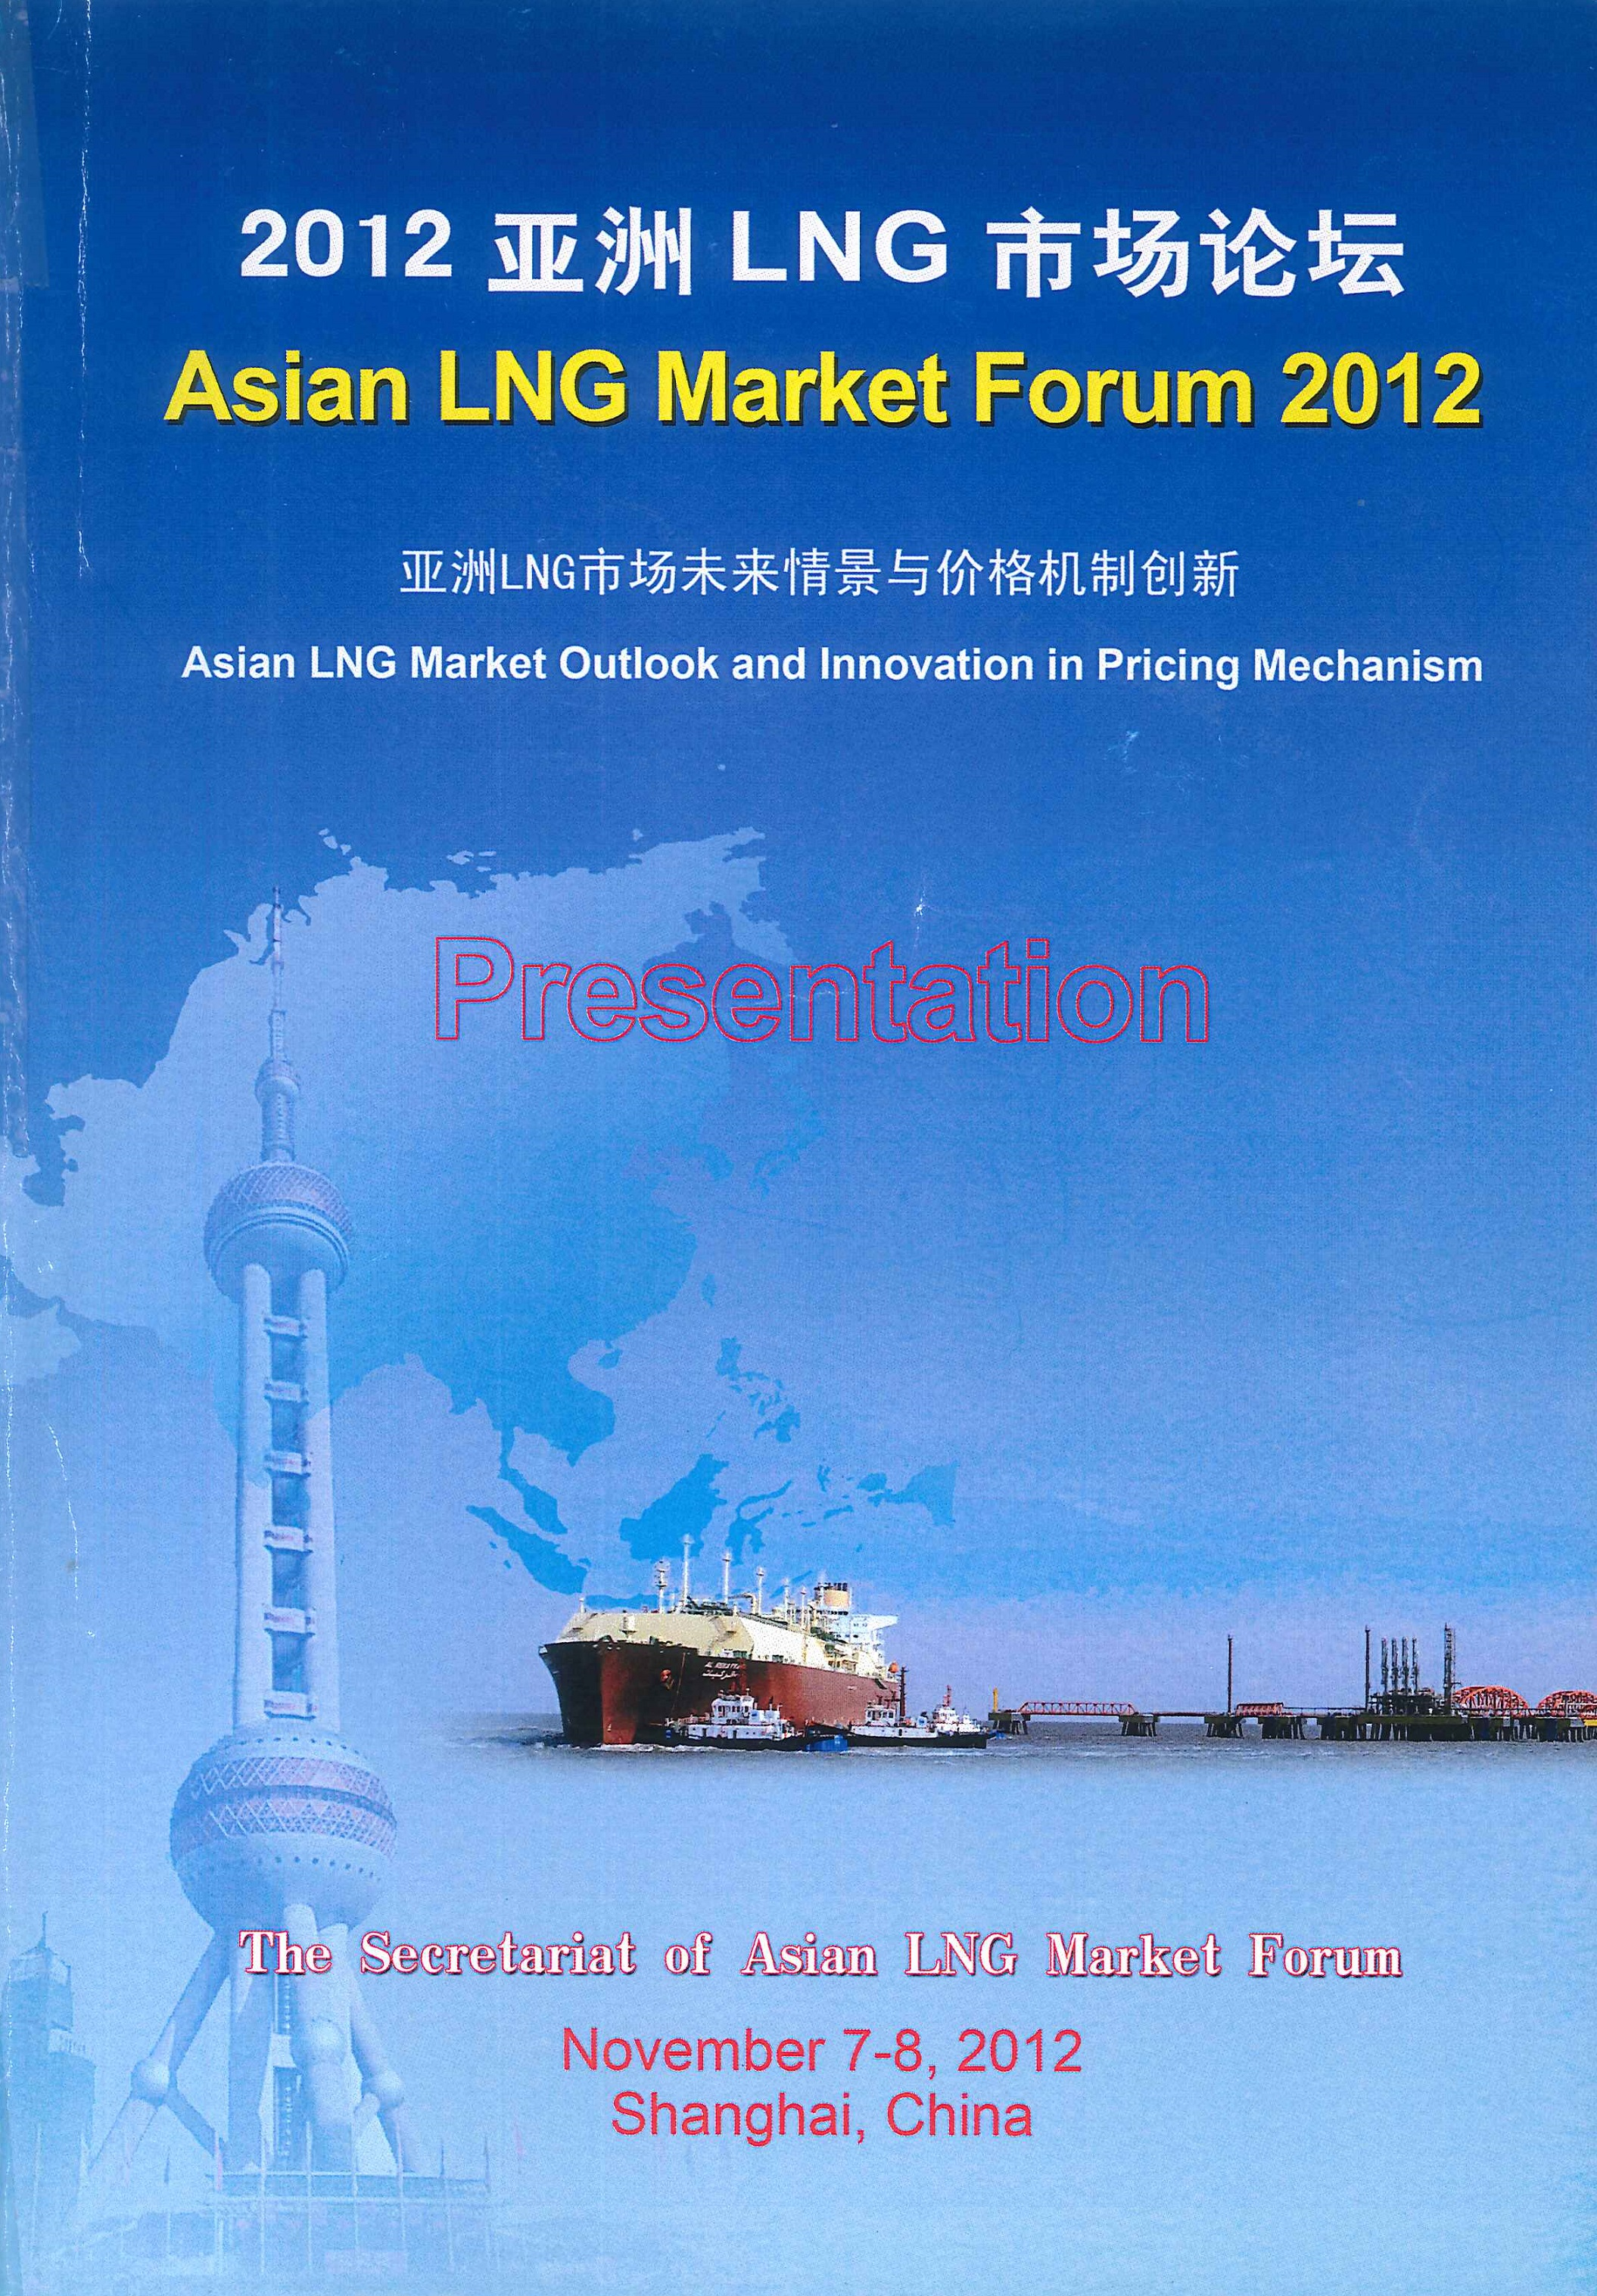 2012亚洲LNG市场论坛:亚洲LNG市场未来情景与价格机制创新=Asian LNG market forum 2012: Asian LNG market outlook and innovation in pricing mechanism